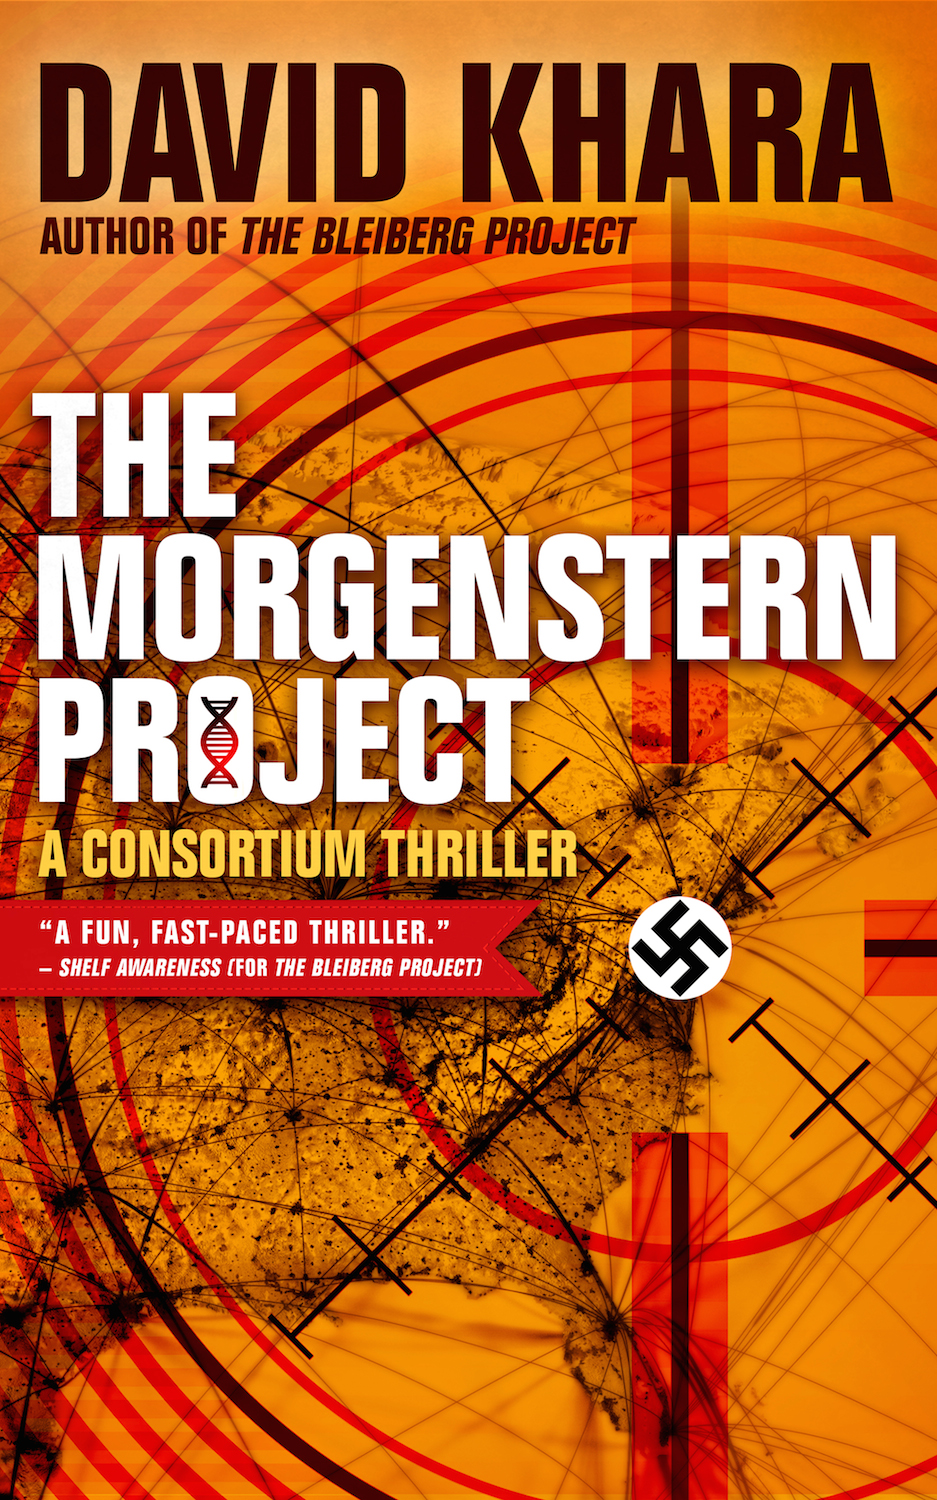 The Morgenstern Project cover